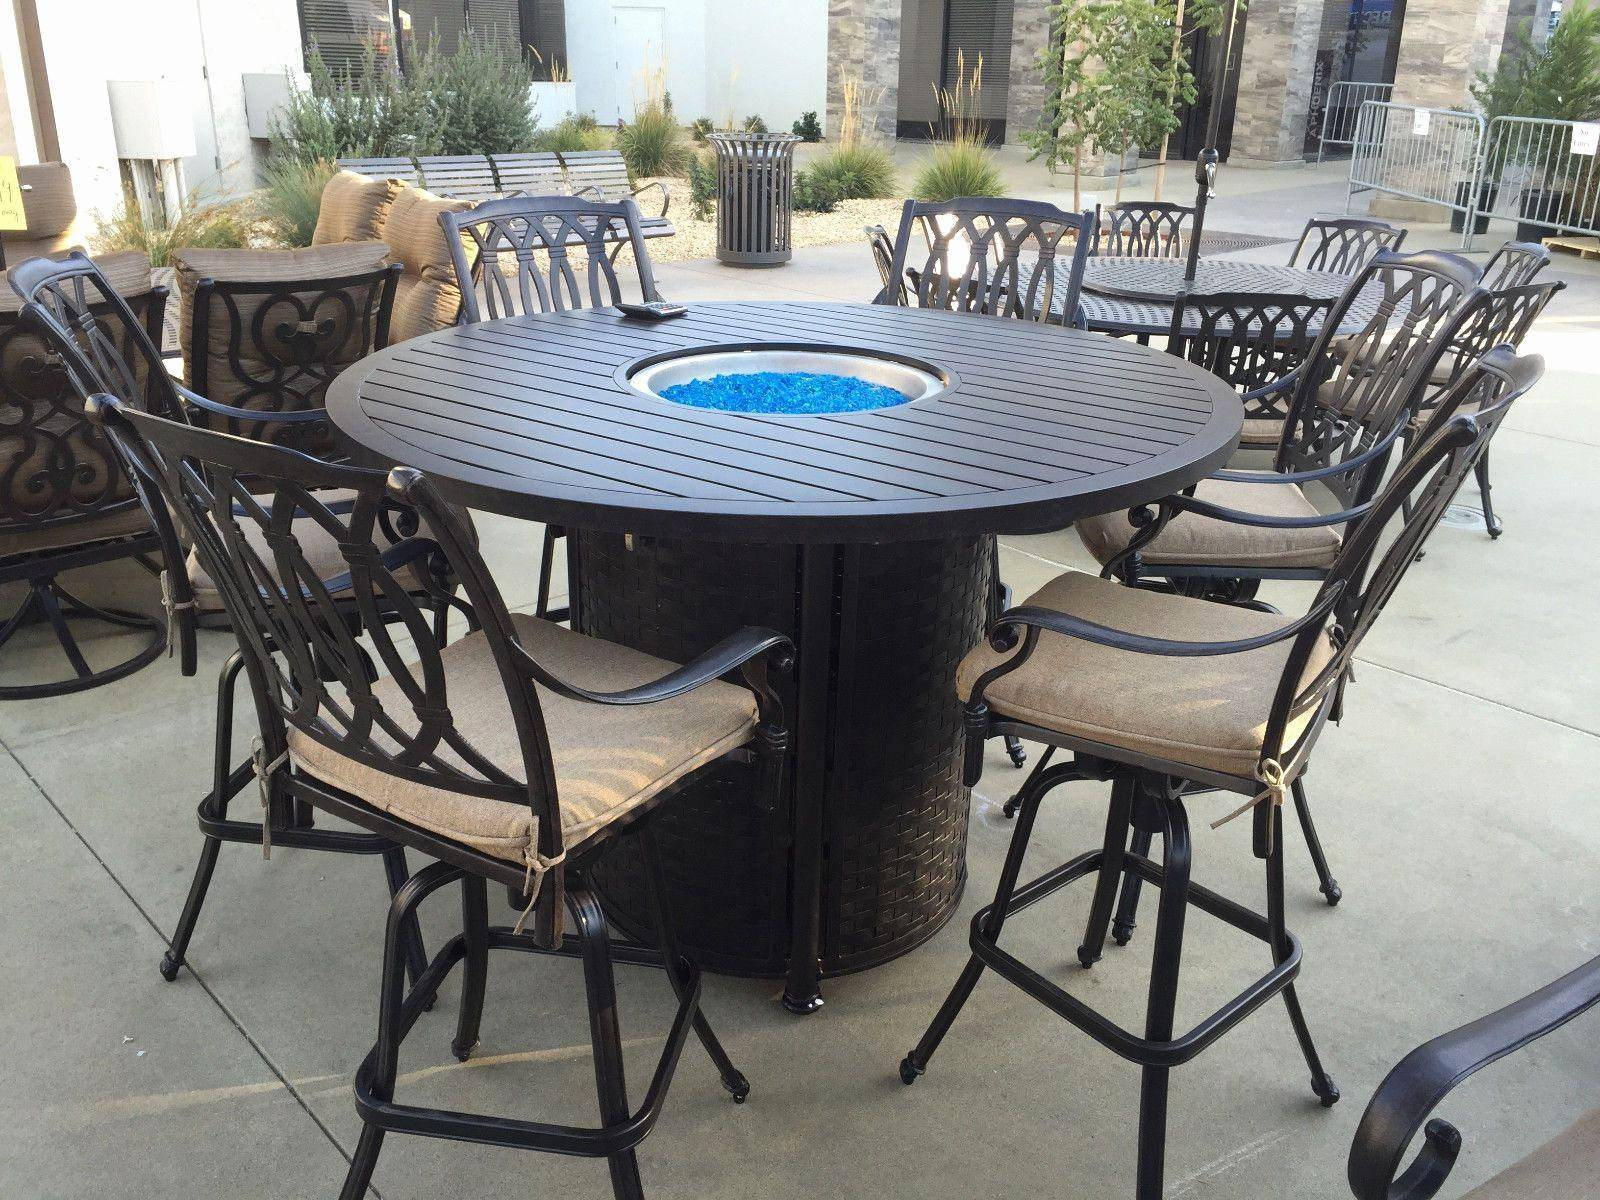 elegant outdoor patio furniture ideas designs diy new table top side accent pearl drum stool target curtain rods ceramic small round antique dining base mini wide nightstand with